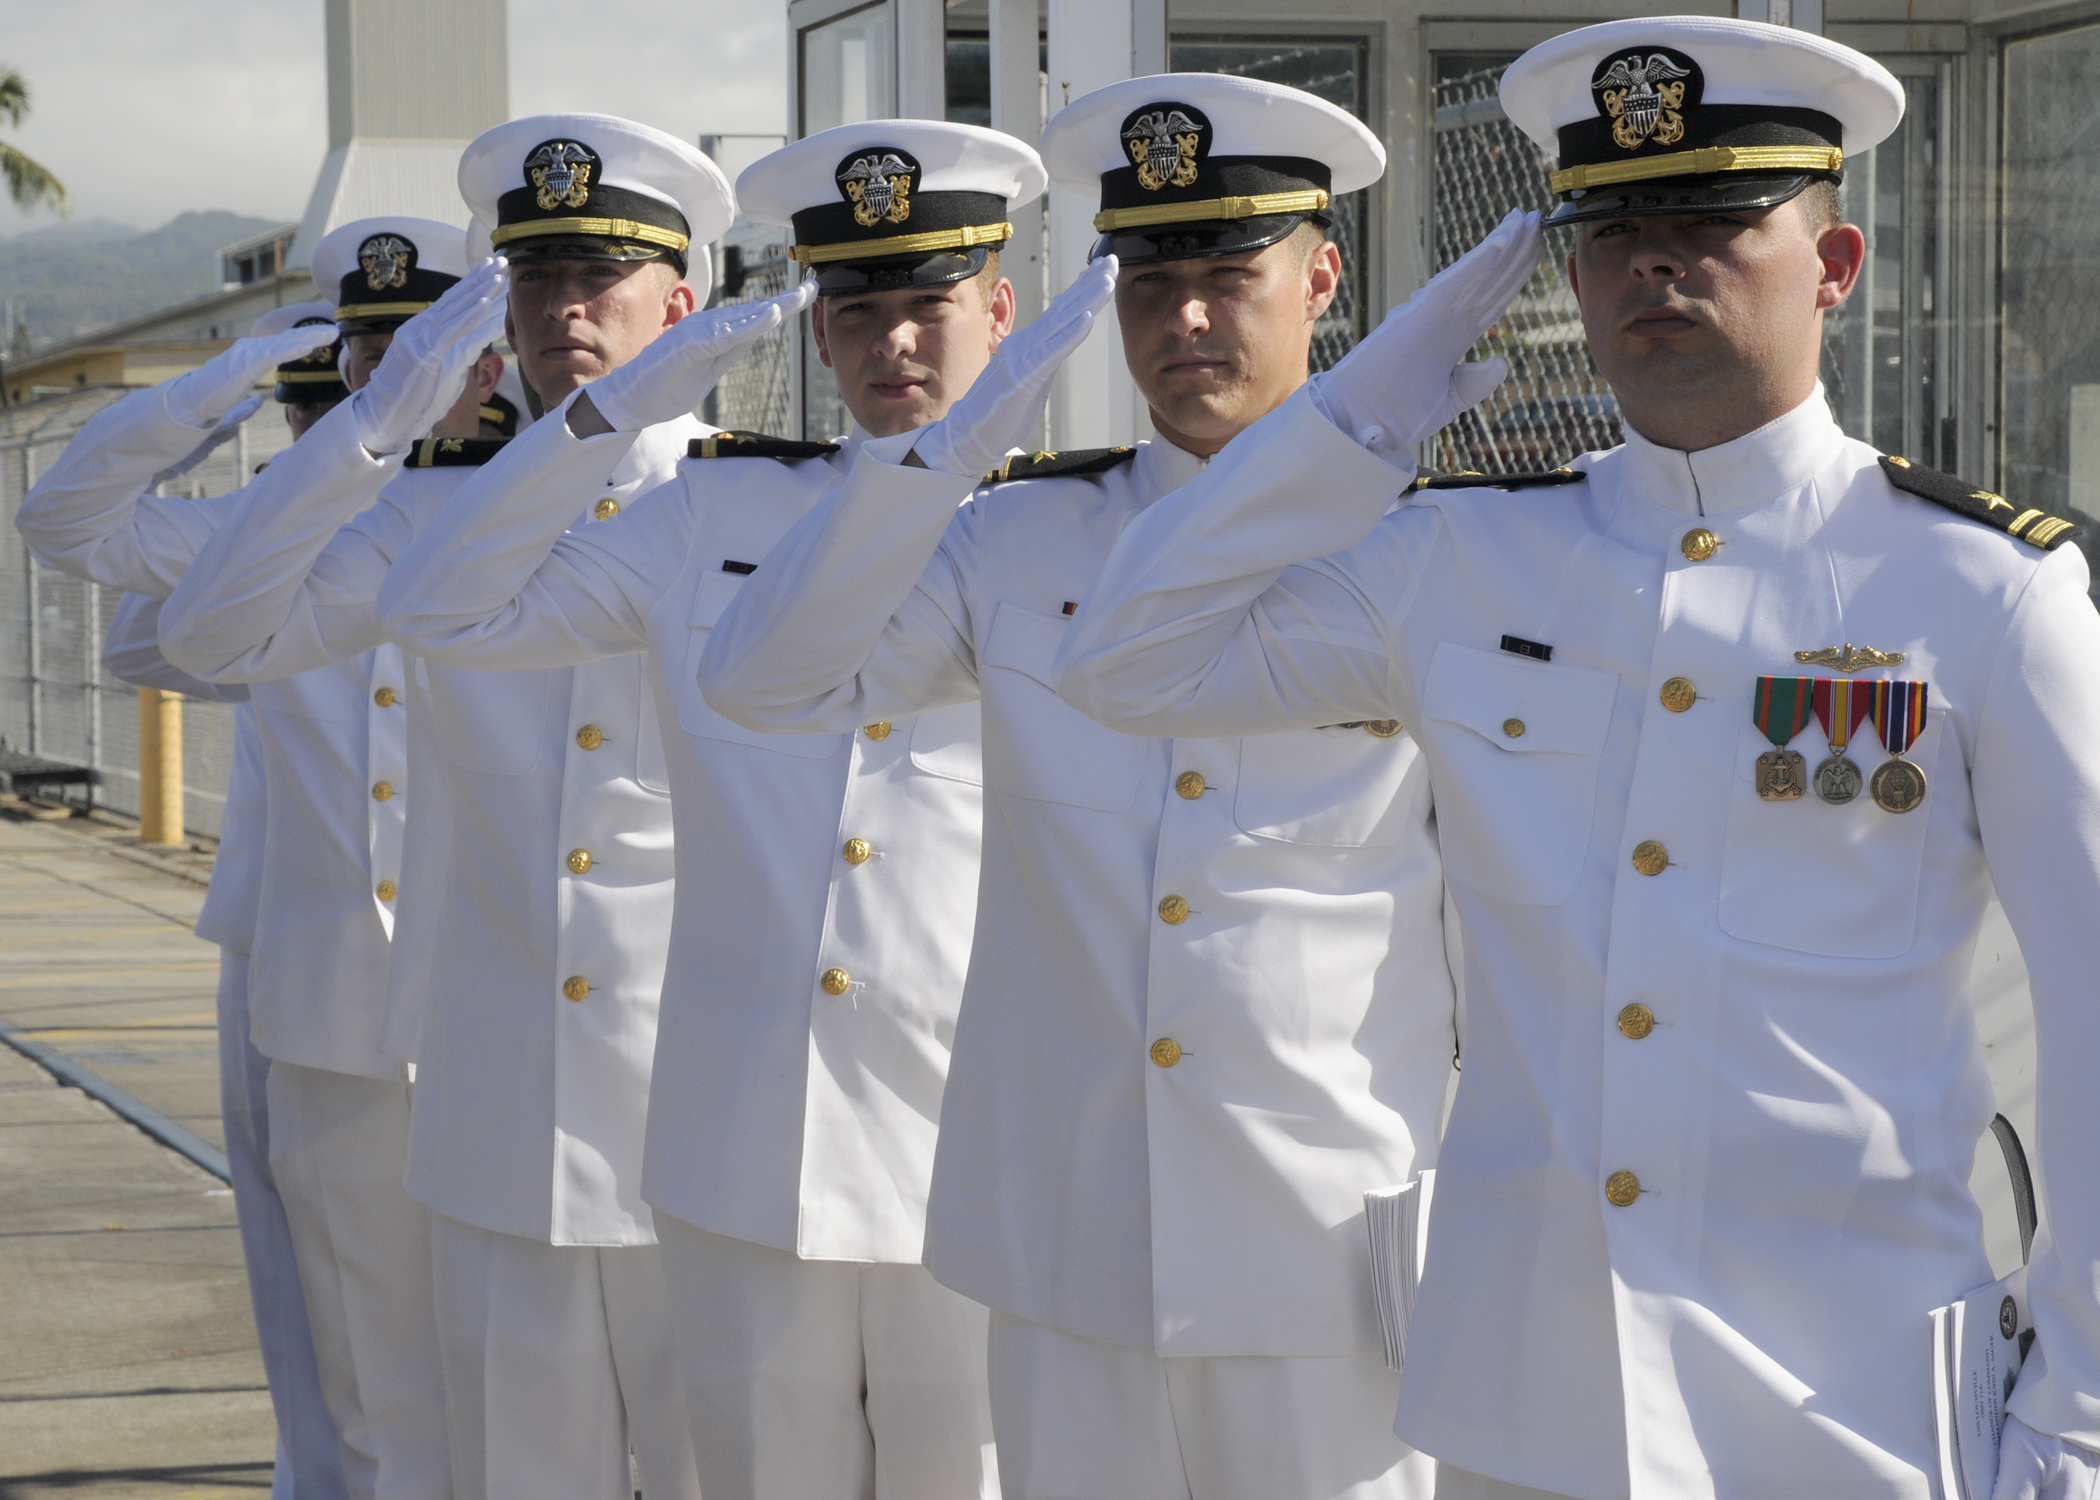 us navy online dating Naval reserve forces spawar support units / sites navy individual augmentee or the united states department of the navy of the linked web sites.